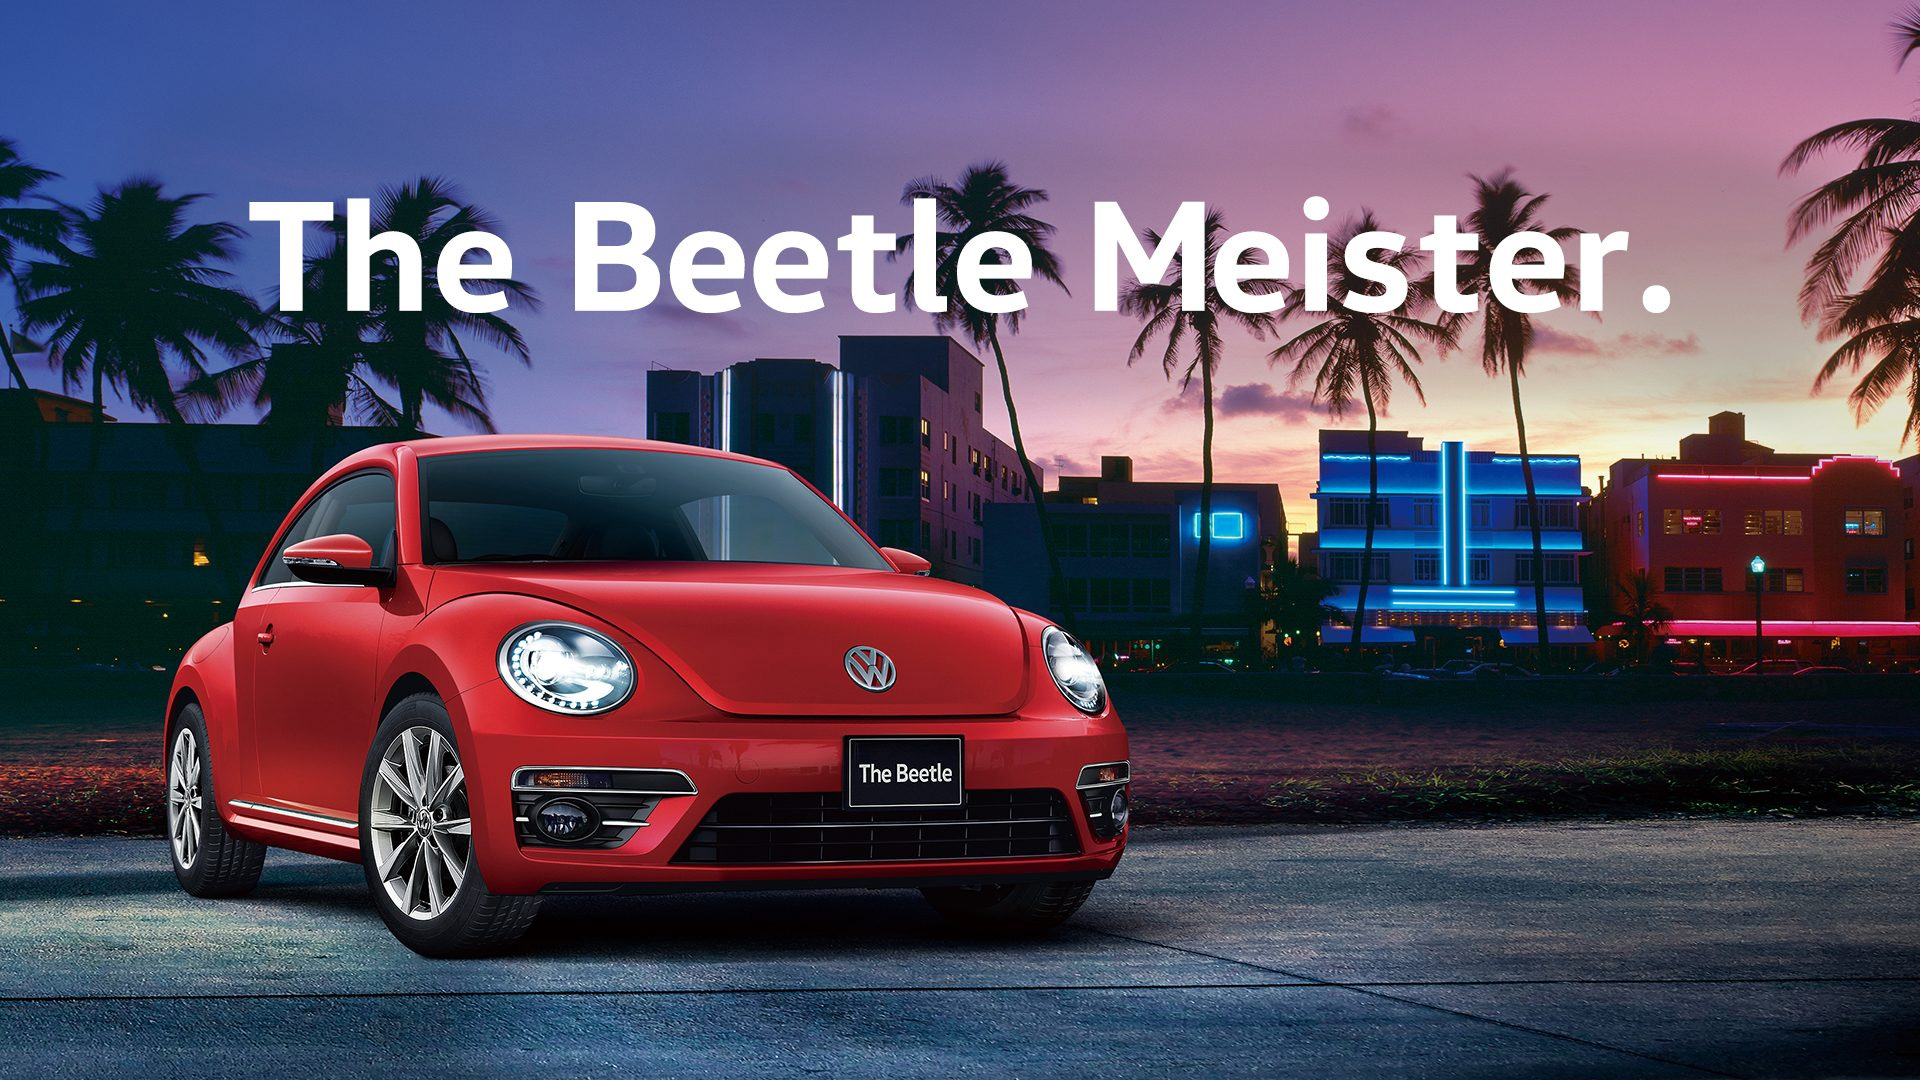 The Beetle Meister